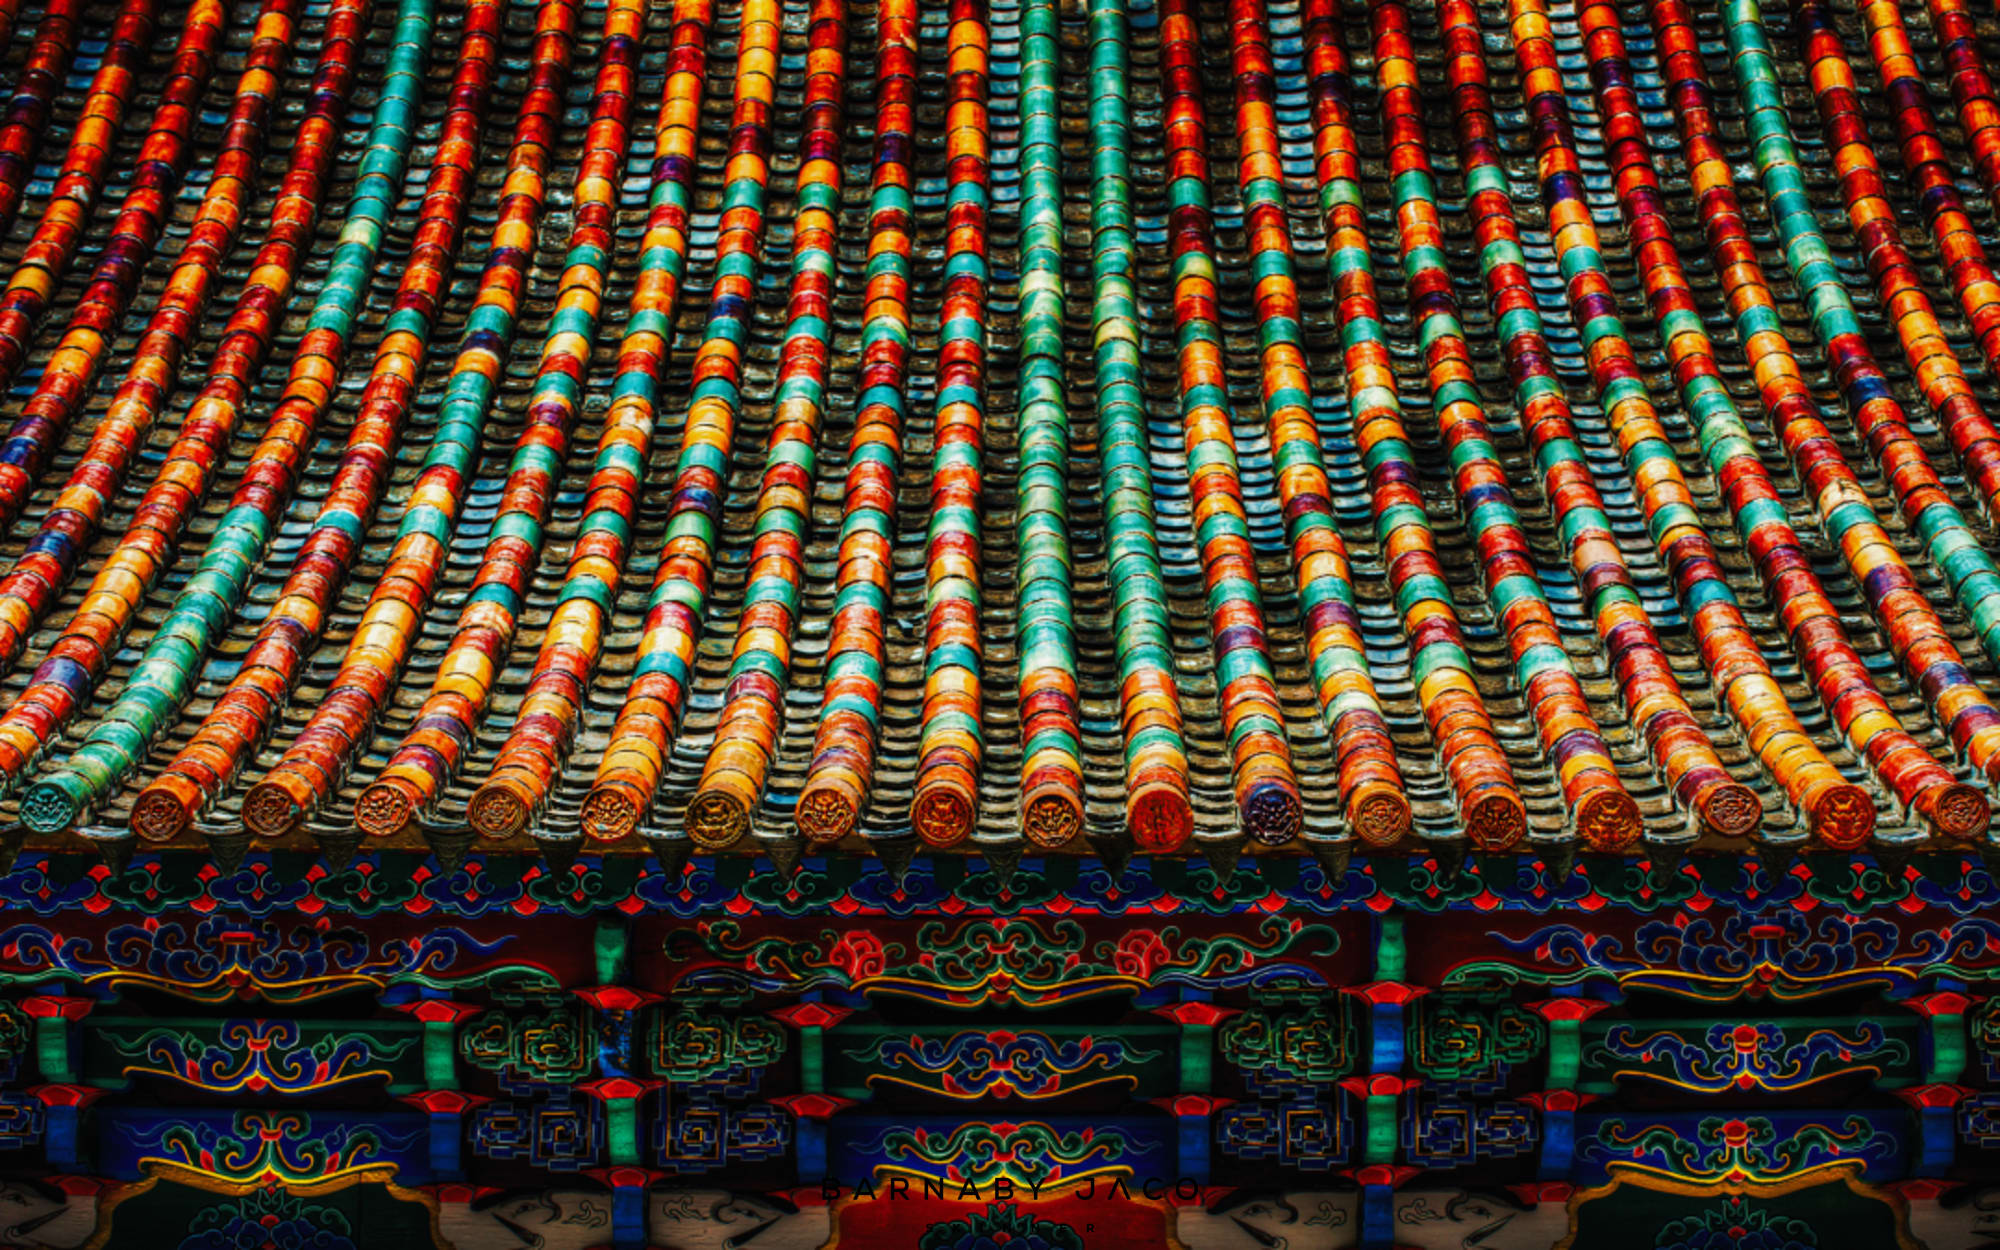 Yunnan - A Tiled Roof by Barnaby Jaco Skinner